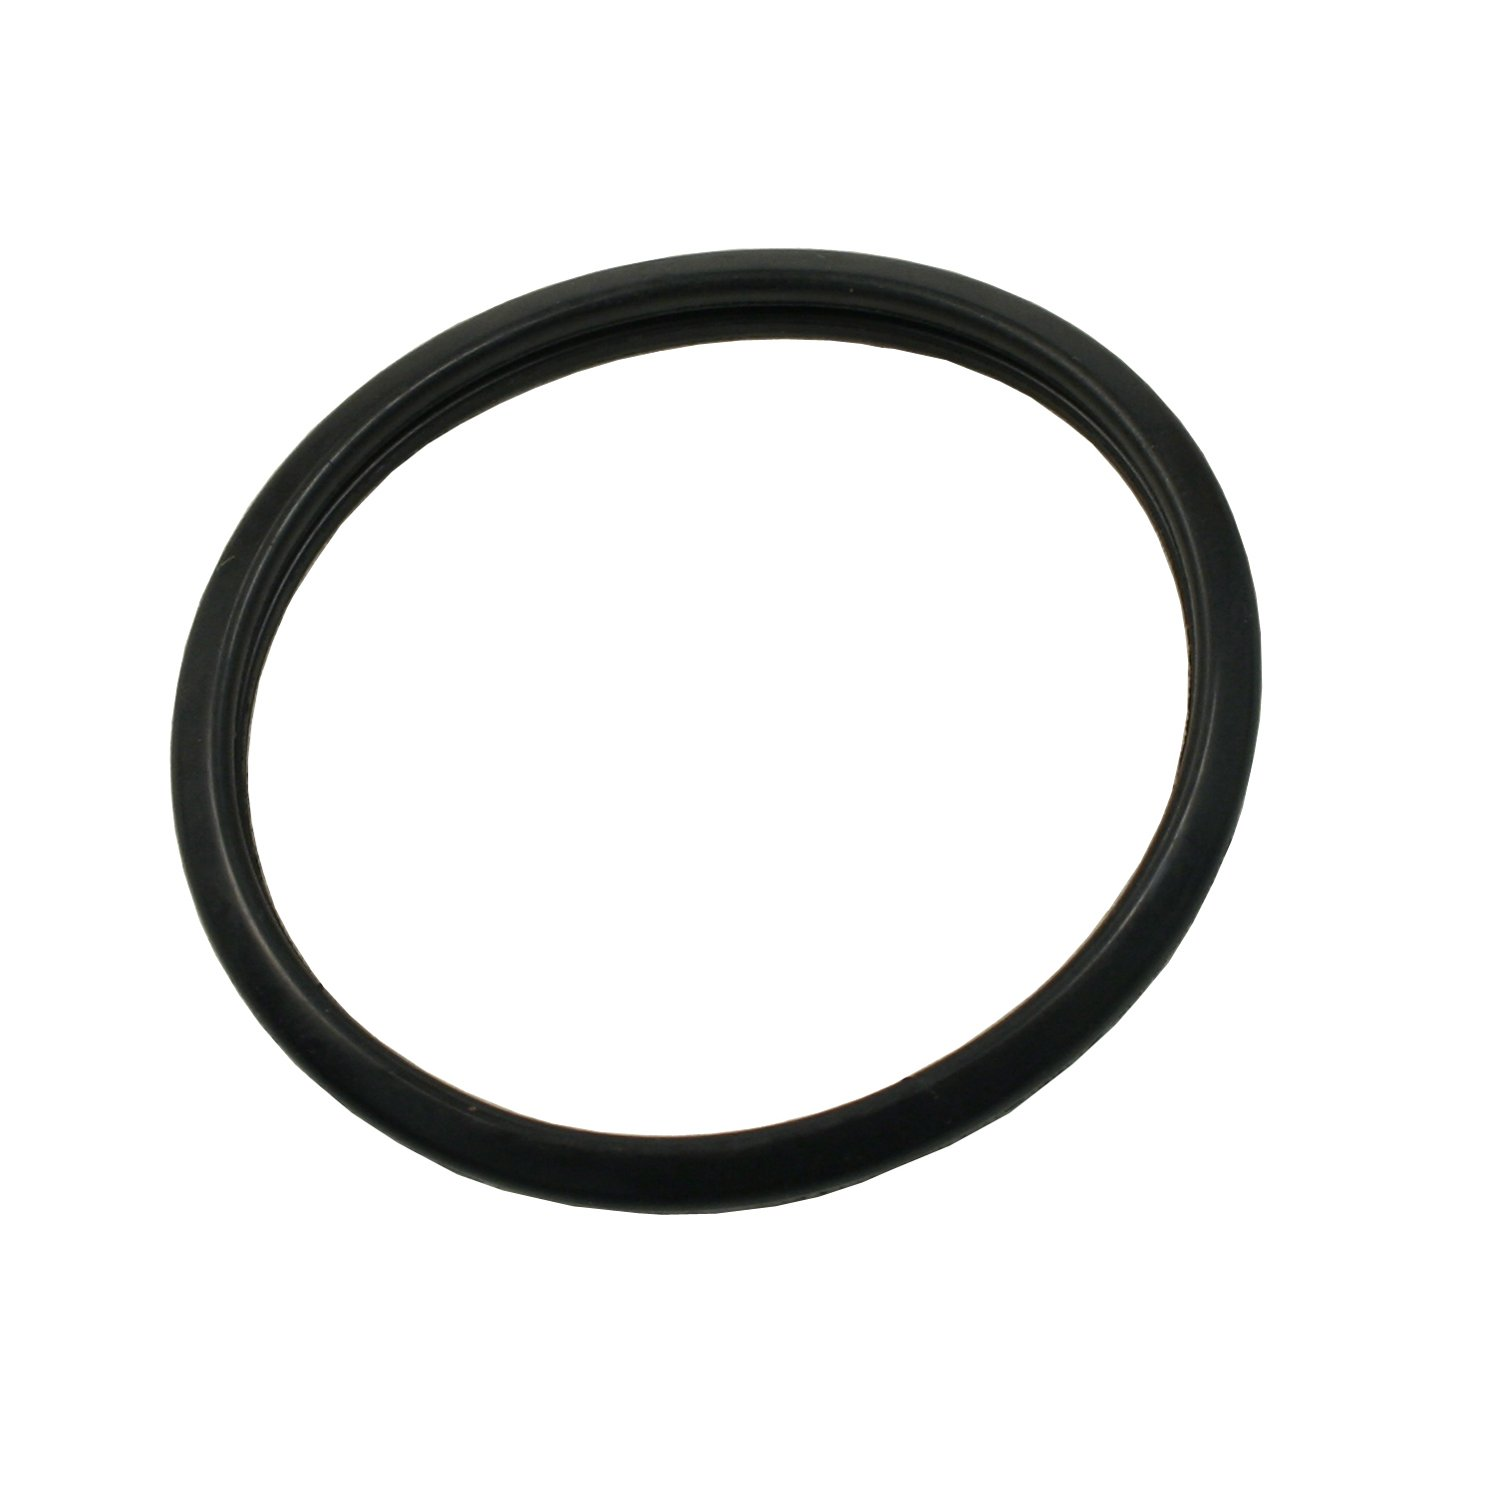 Beck Arnley 039-0057 Thermostat Gasket BA039-0057